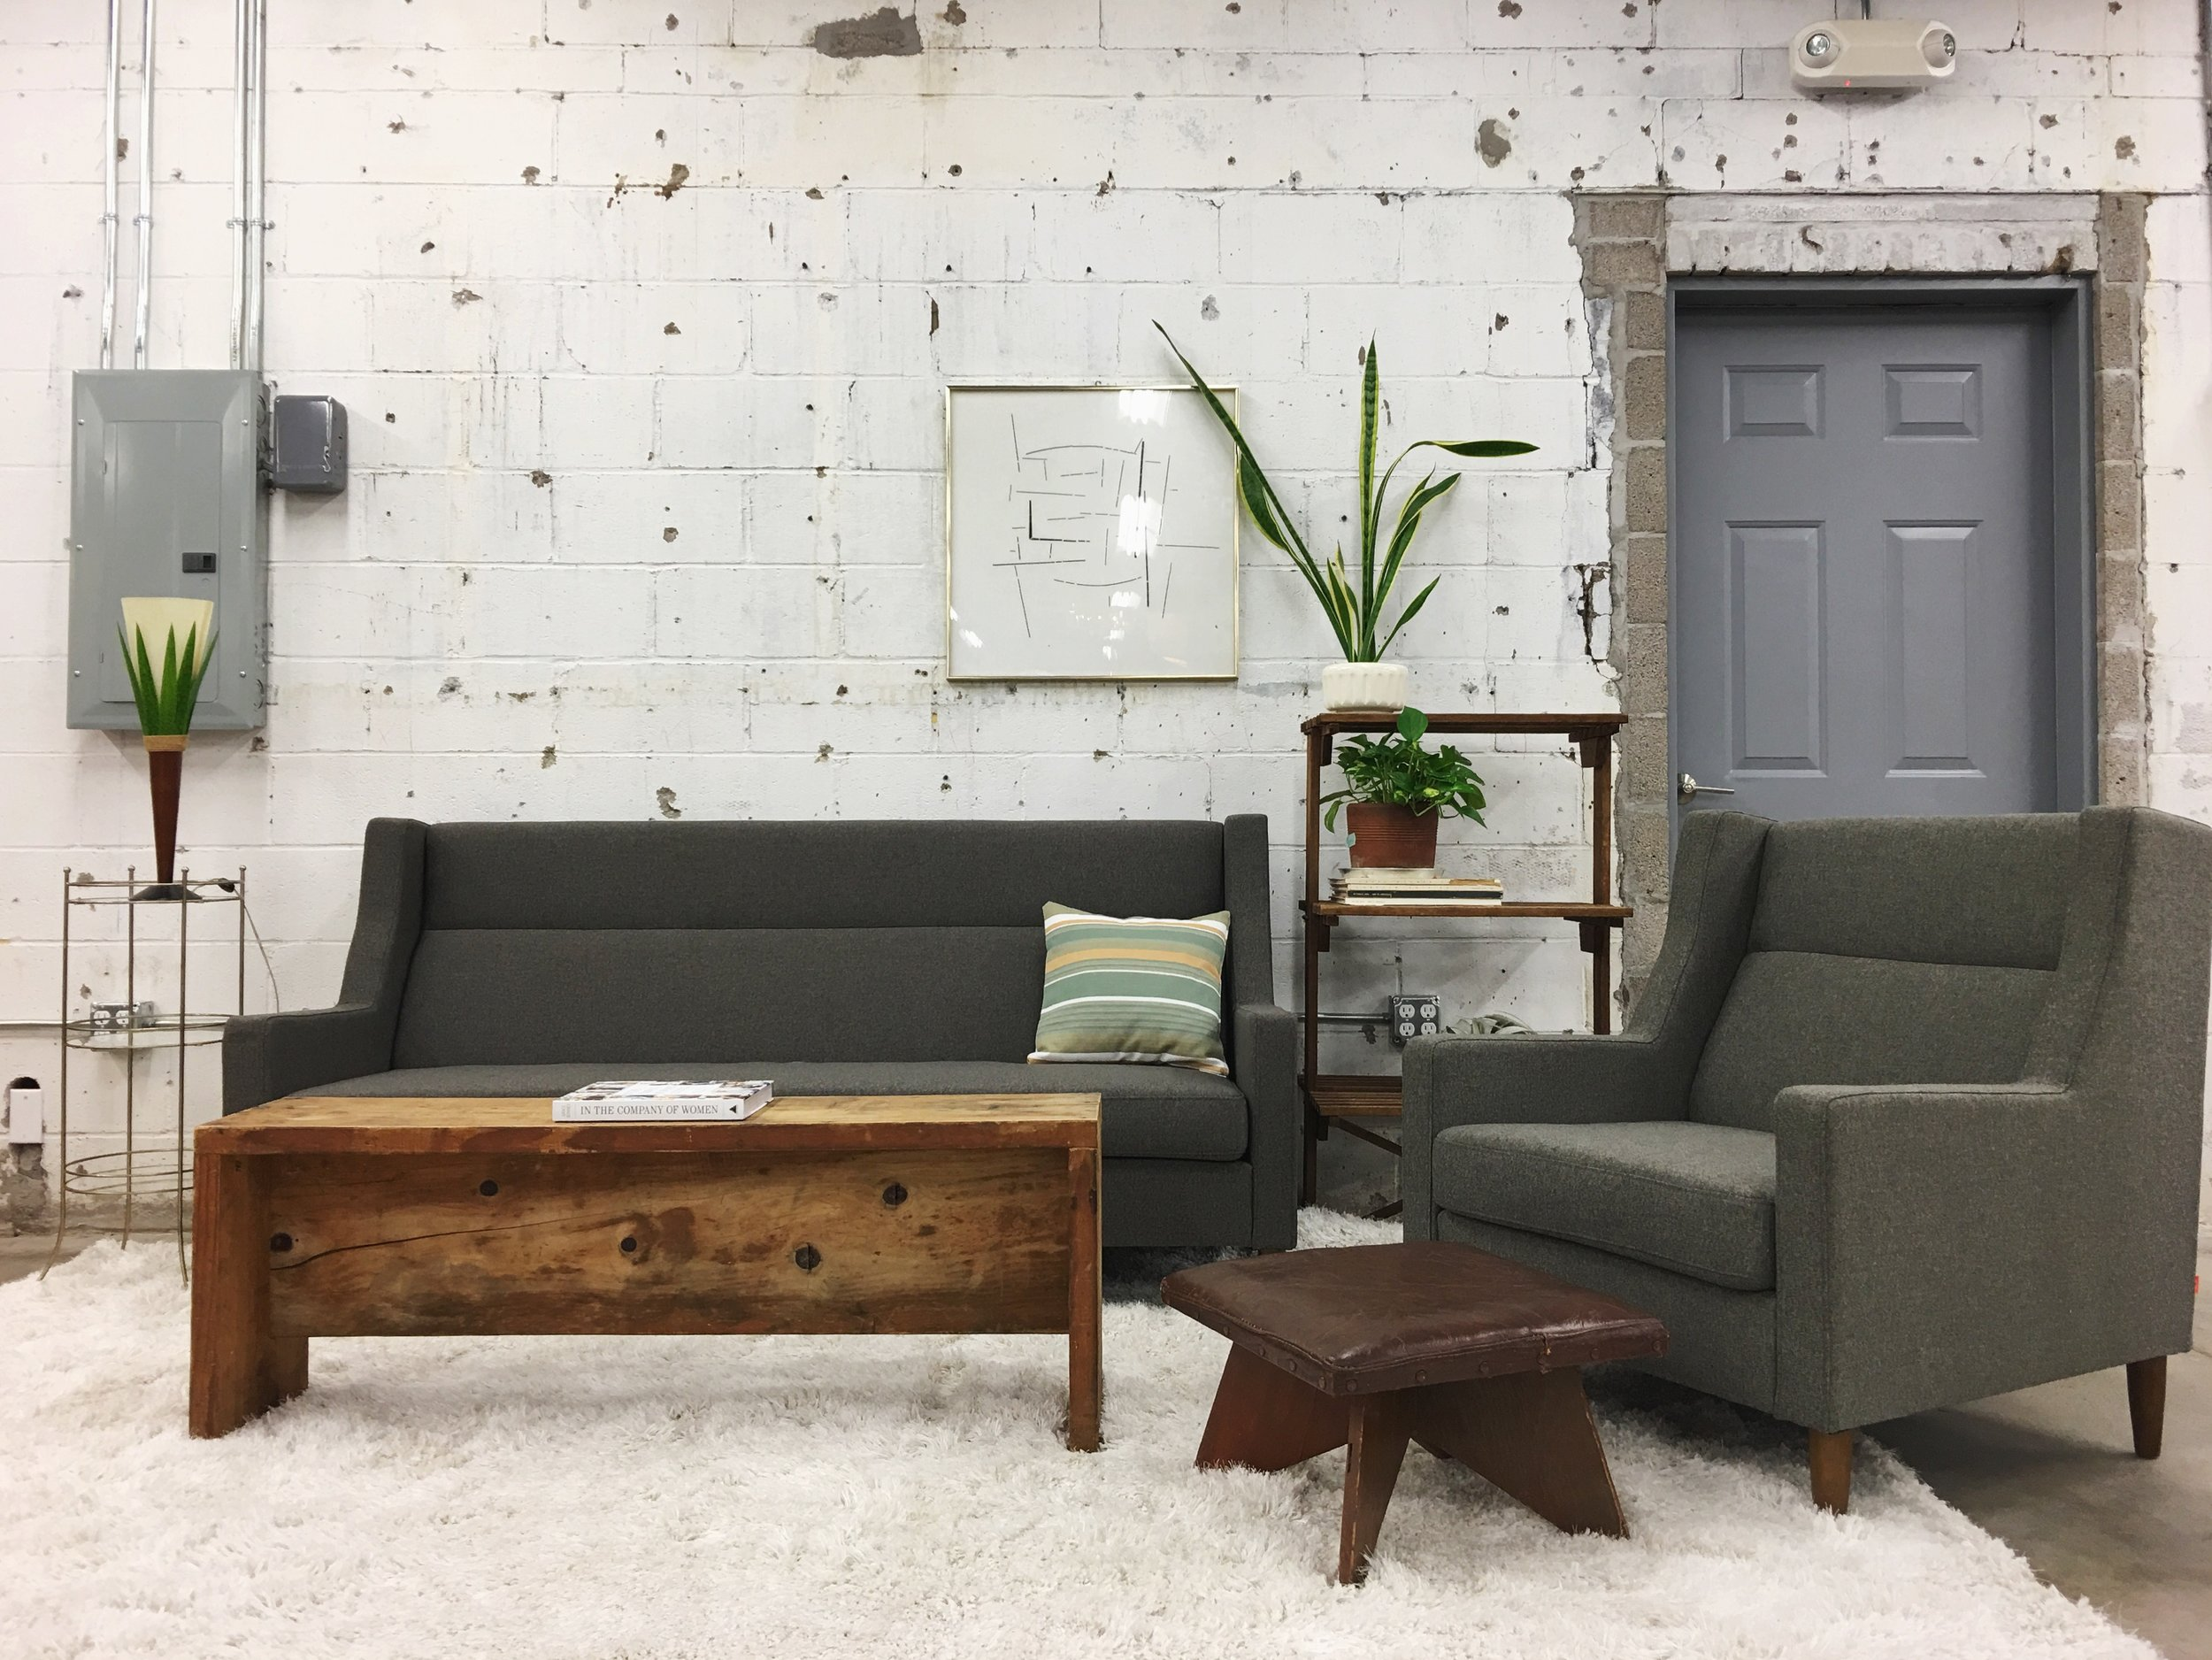 We've brought in only the necessities. A grass lamp, a couple plants, and places to sit and to prop your feet–that's it!